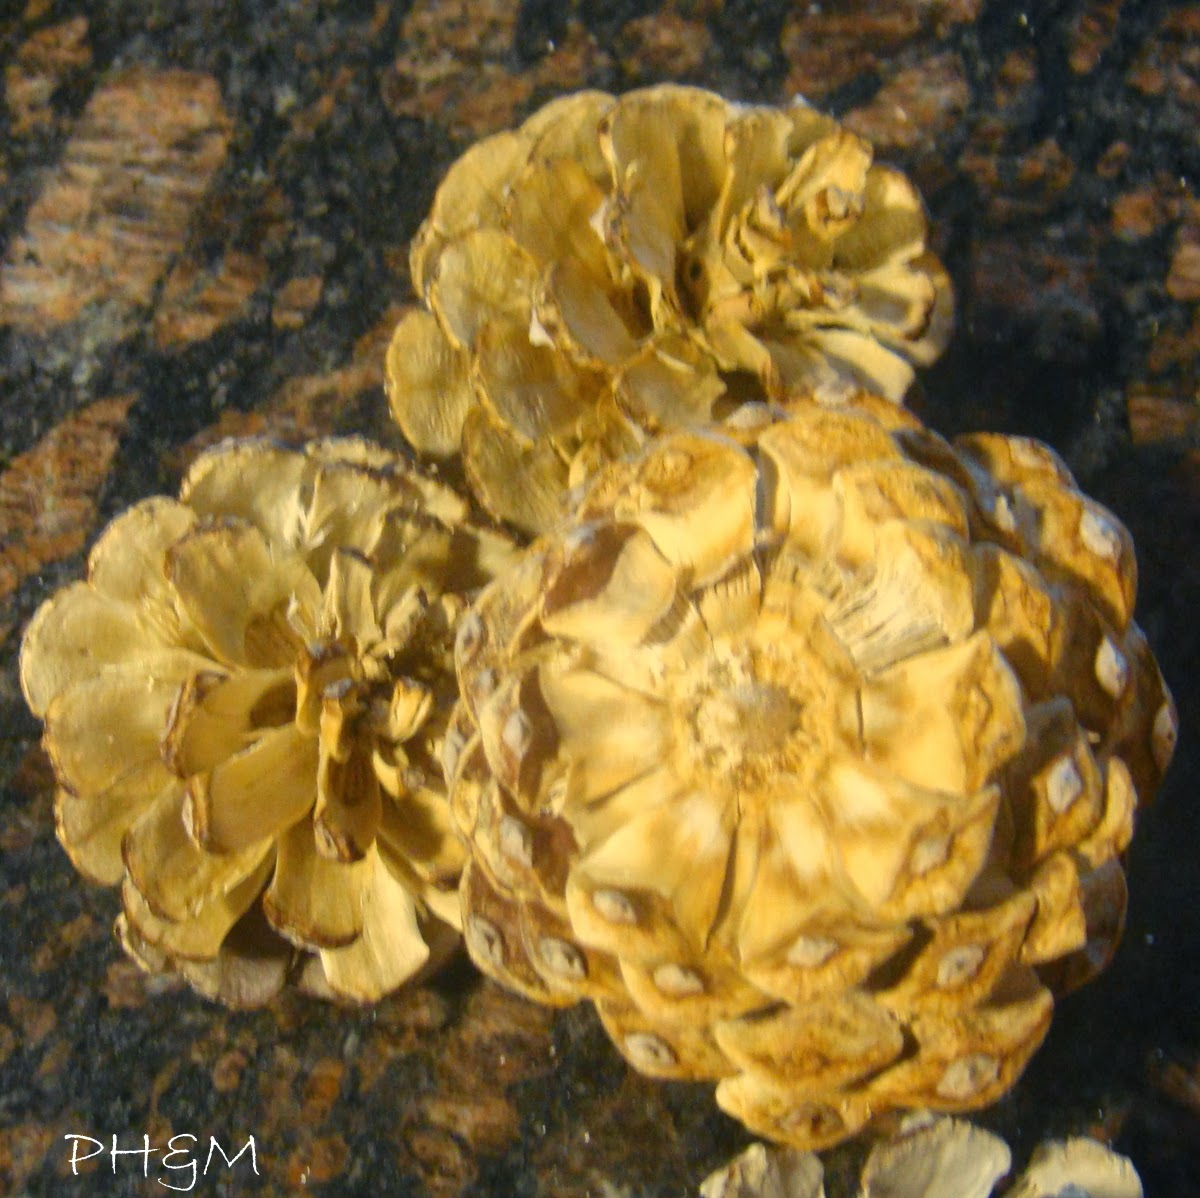 http://plumperfectandme.blogspot.com/2013/10/bleached-pine-cones-decor.html